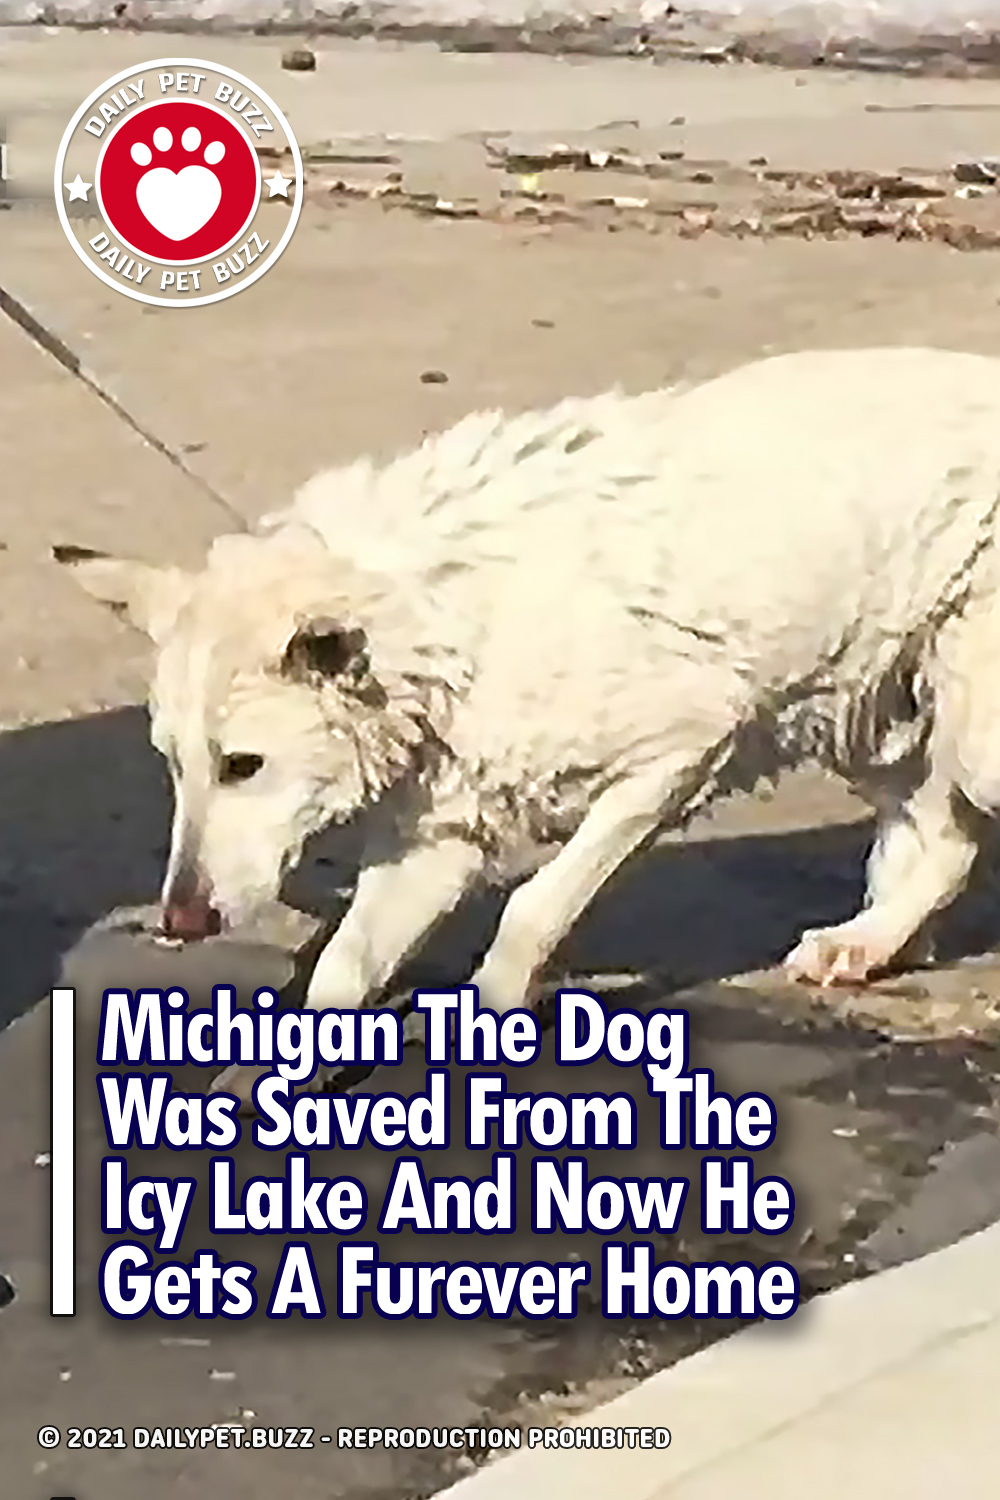 Michigan The Dog Was Saved From The Icy Lake And Now He Gets A Furever Home